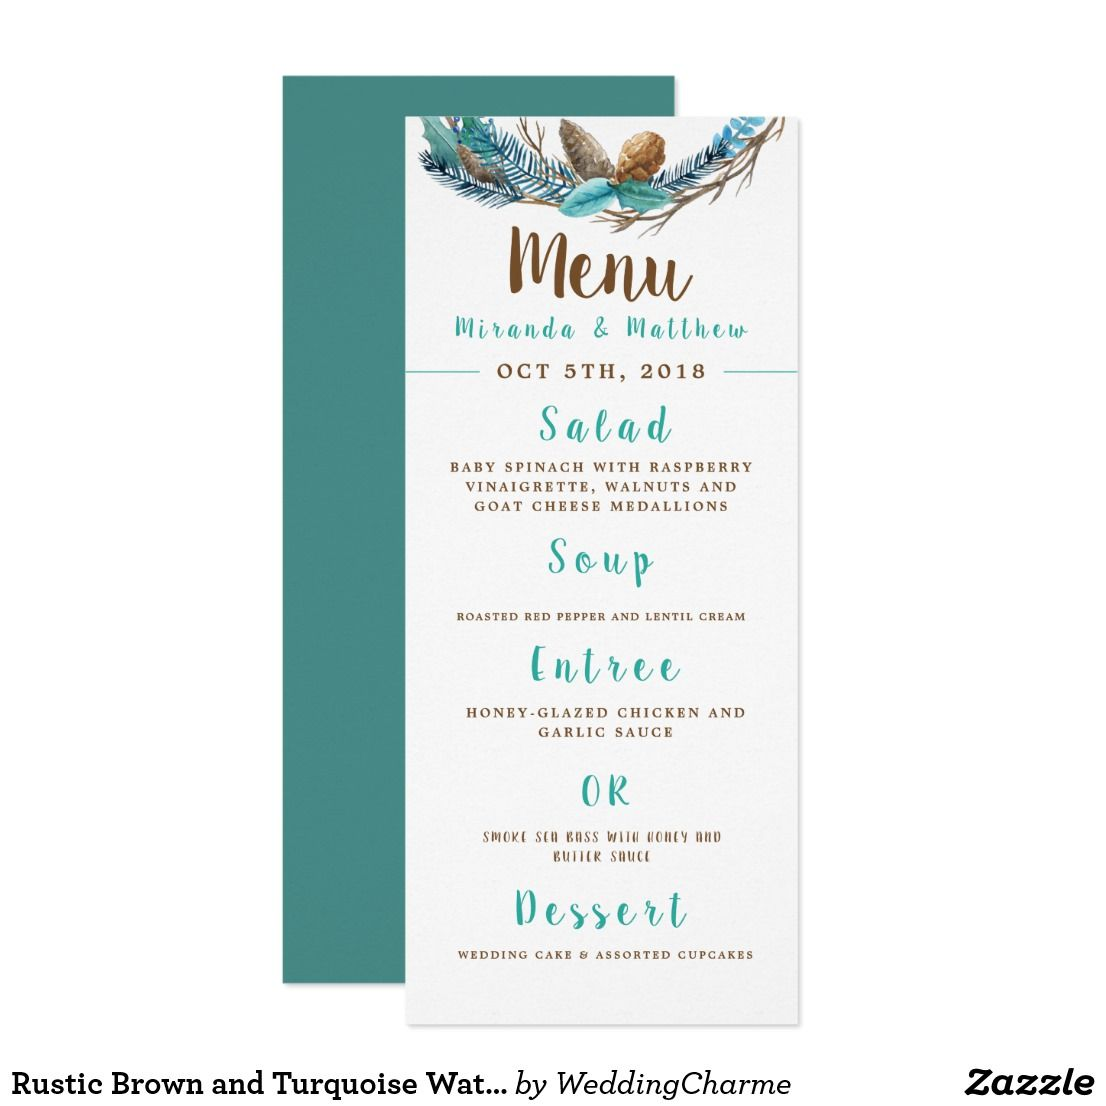 Wedding decorations made with cricut october 2018 Rustic Brown and Turquoise Watercolor Wedding Menu in   Bridal